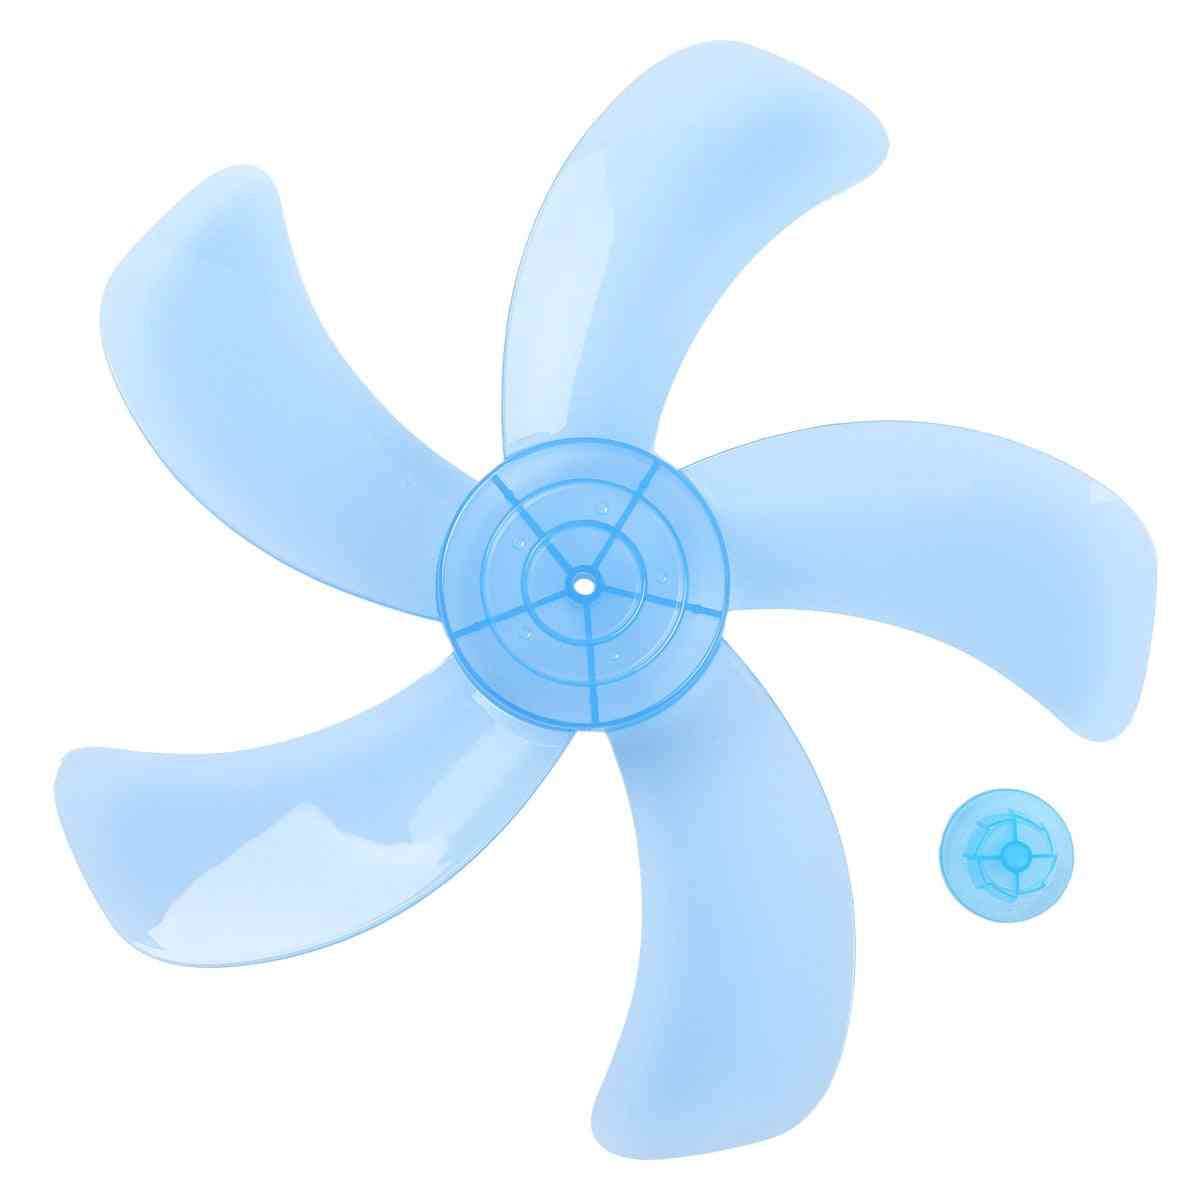 Household Fan Blade Three/five Leave Plastic Impellor With Nut Cover